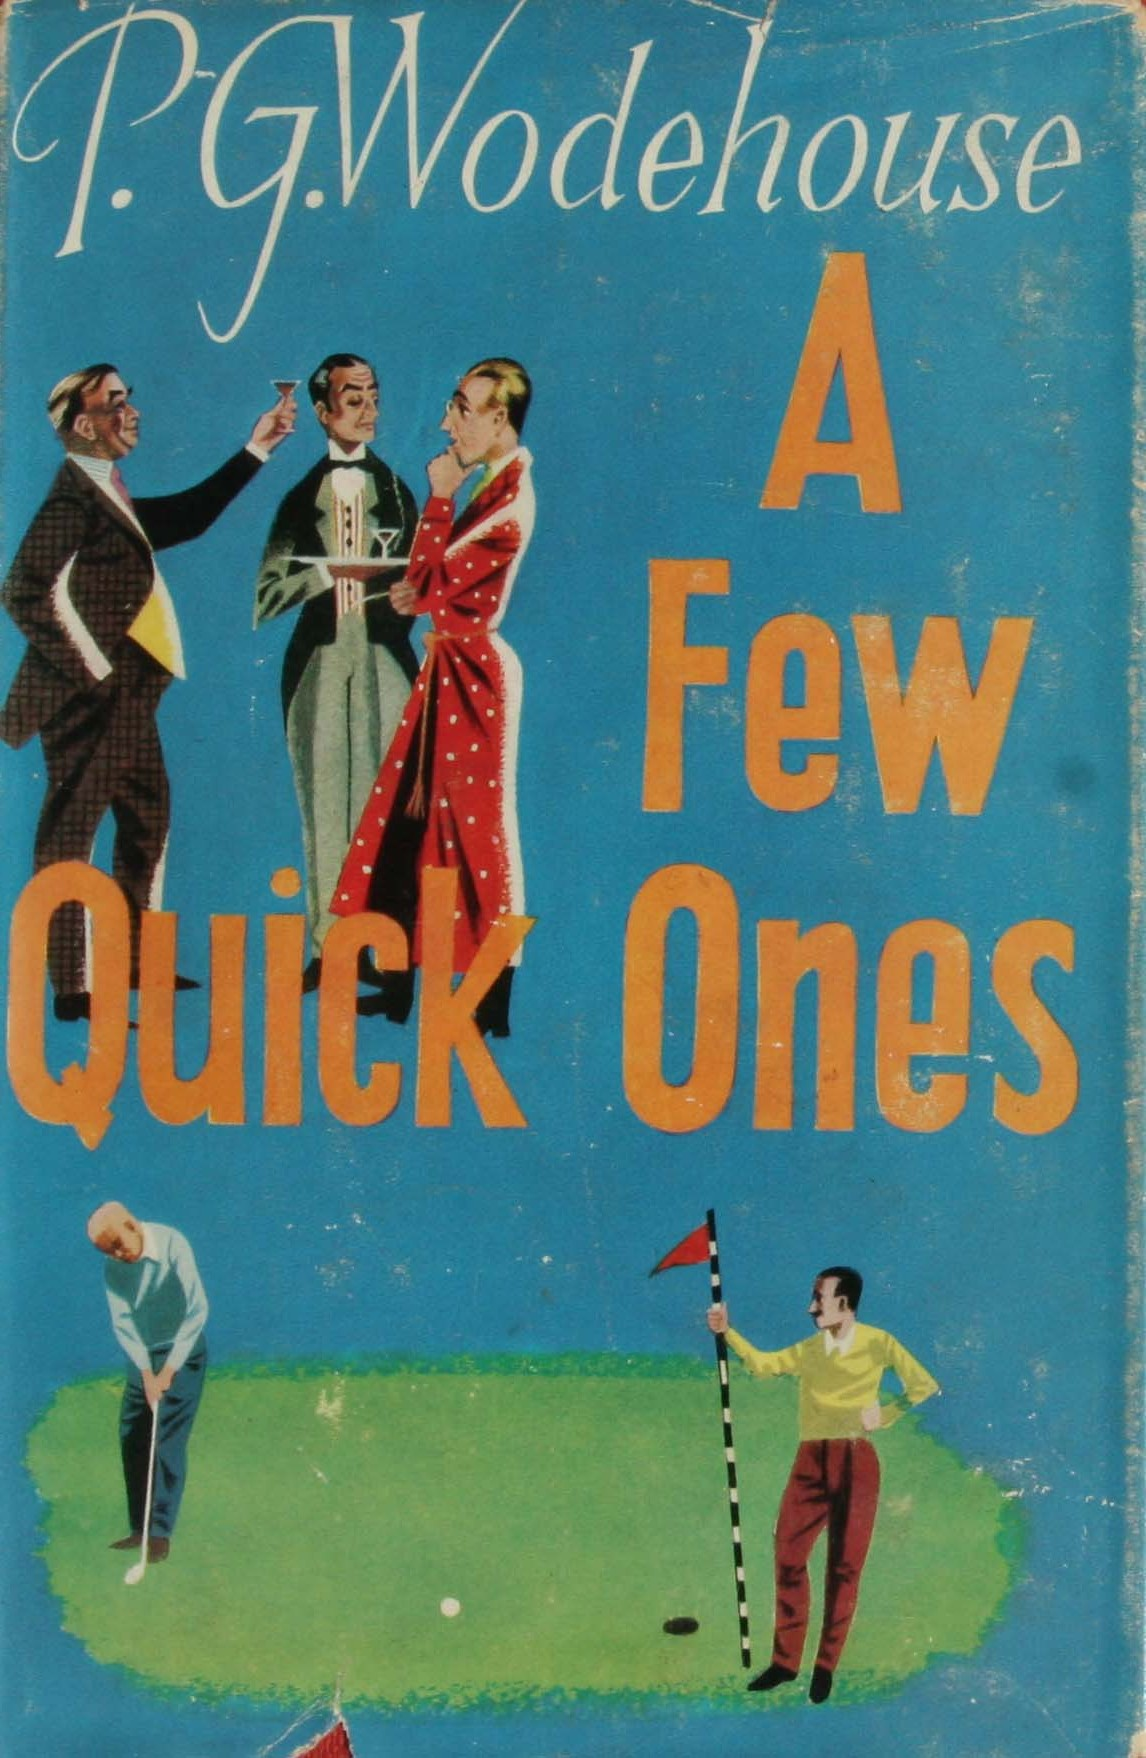 P G Wodehouse A few quick ones